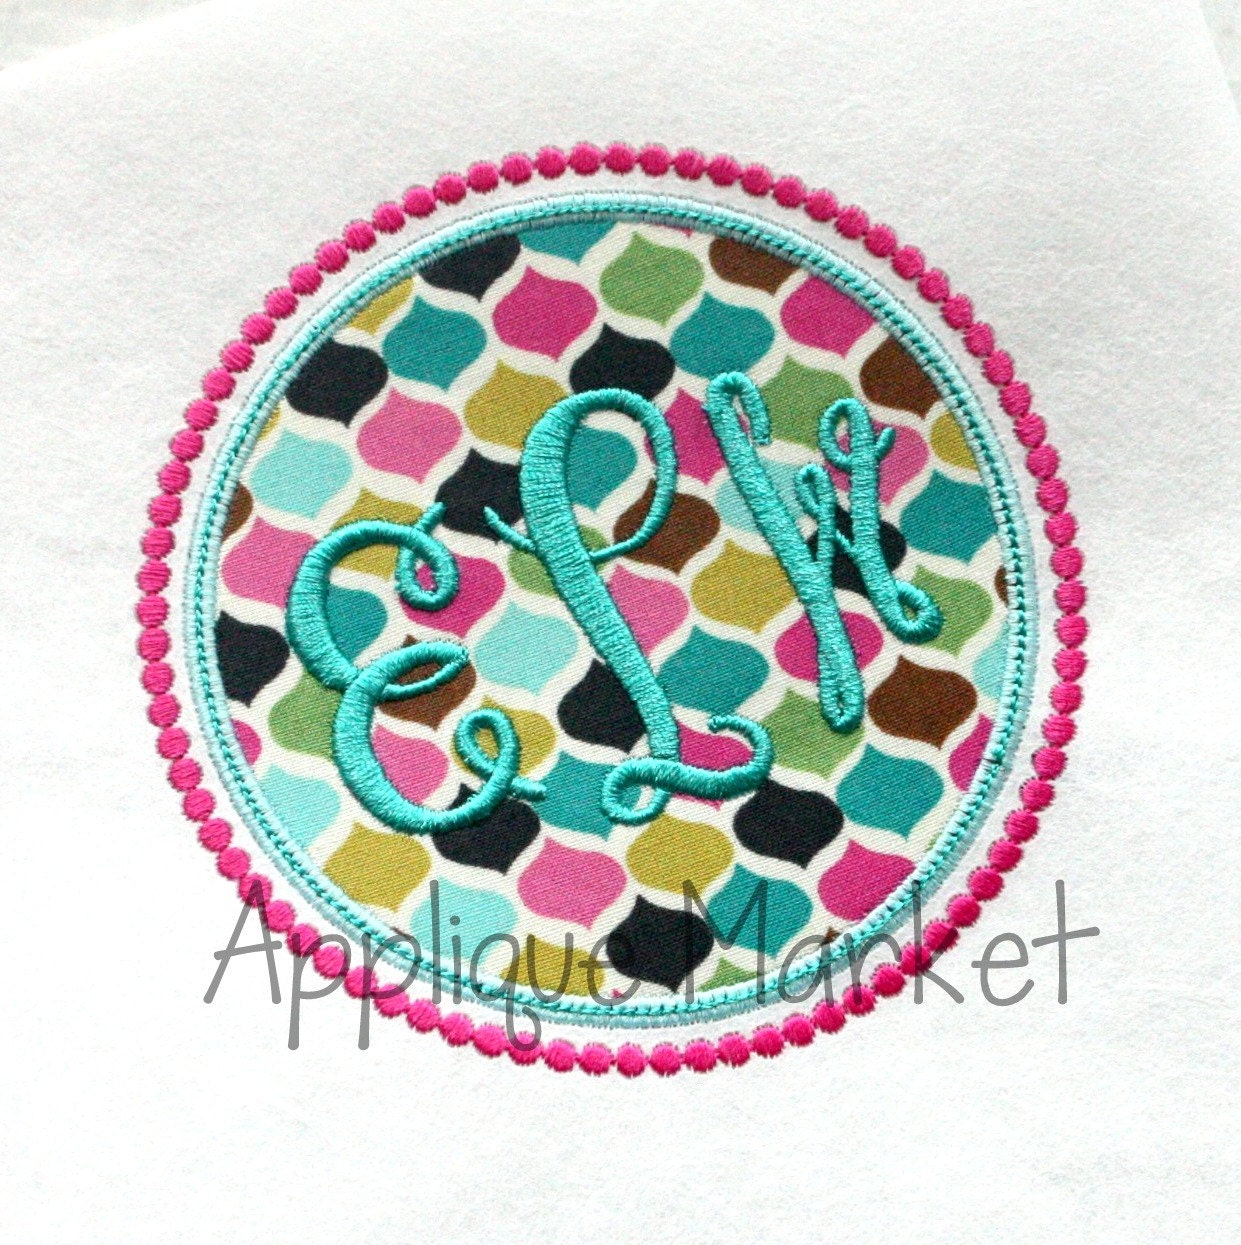 Machine embroidery design applique circle frame beaded instant